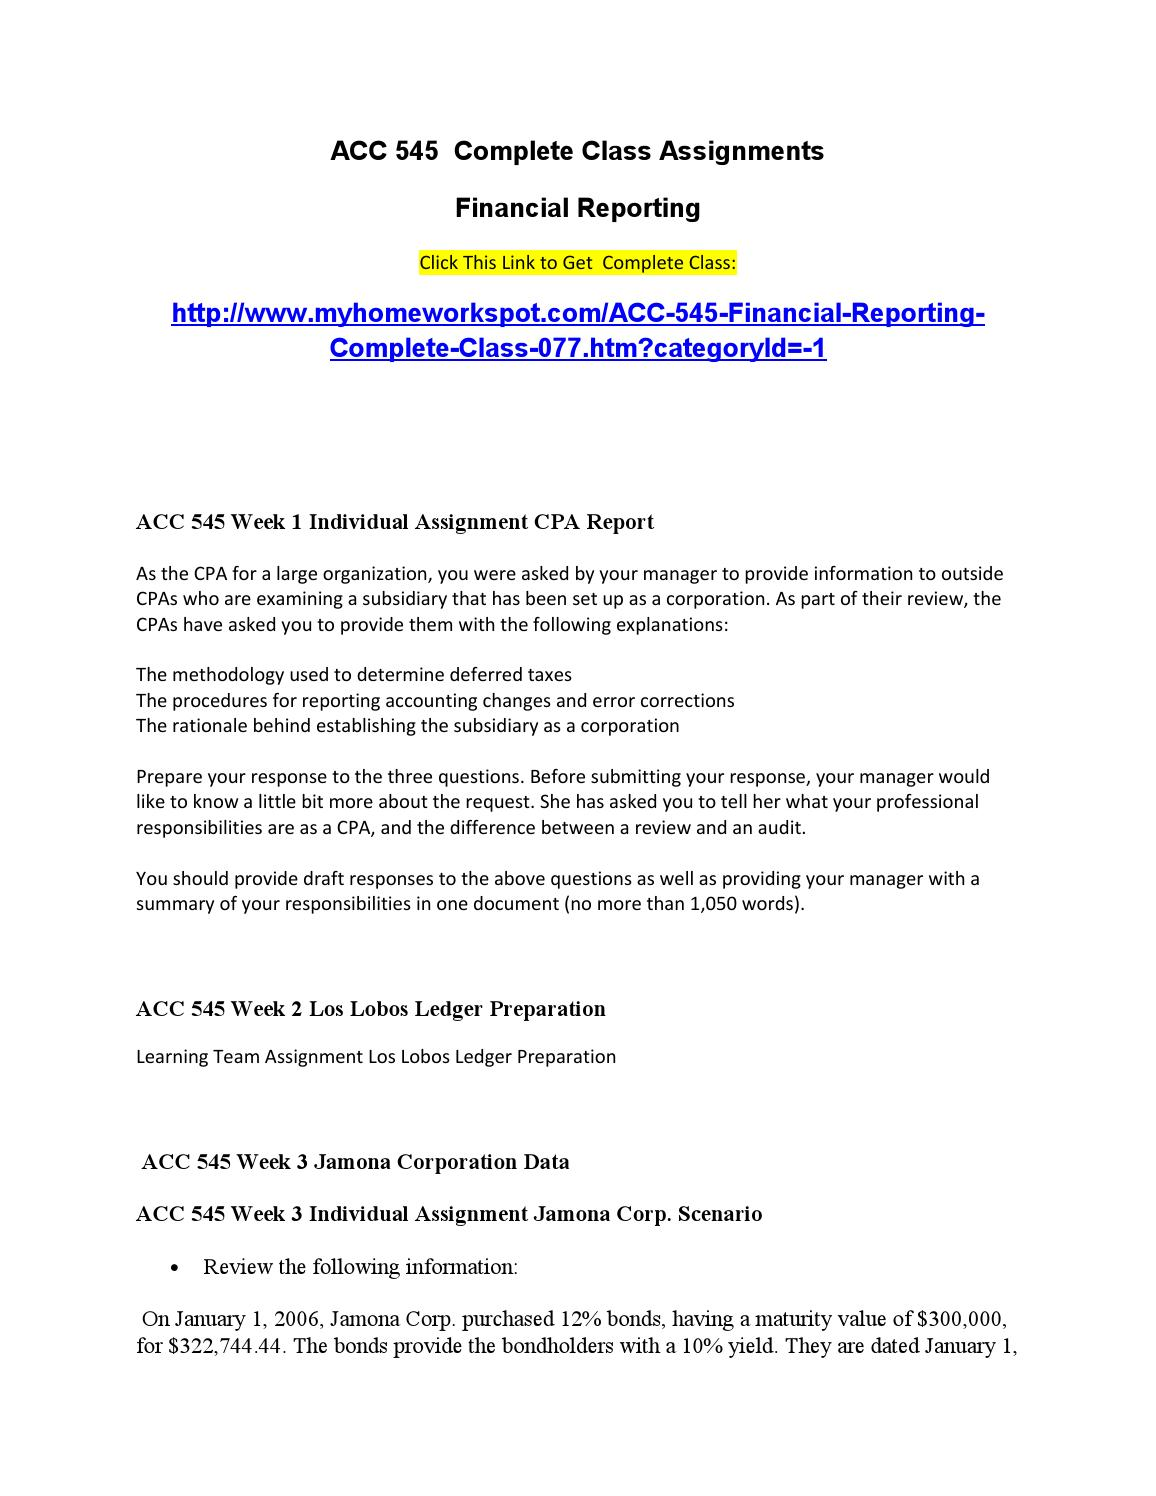 cpa report acc 545 This pack comprises acc 545 week 1 individual assignment cpa report.